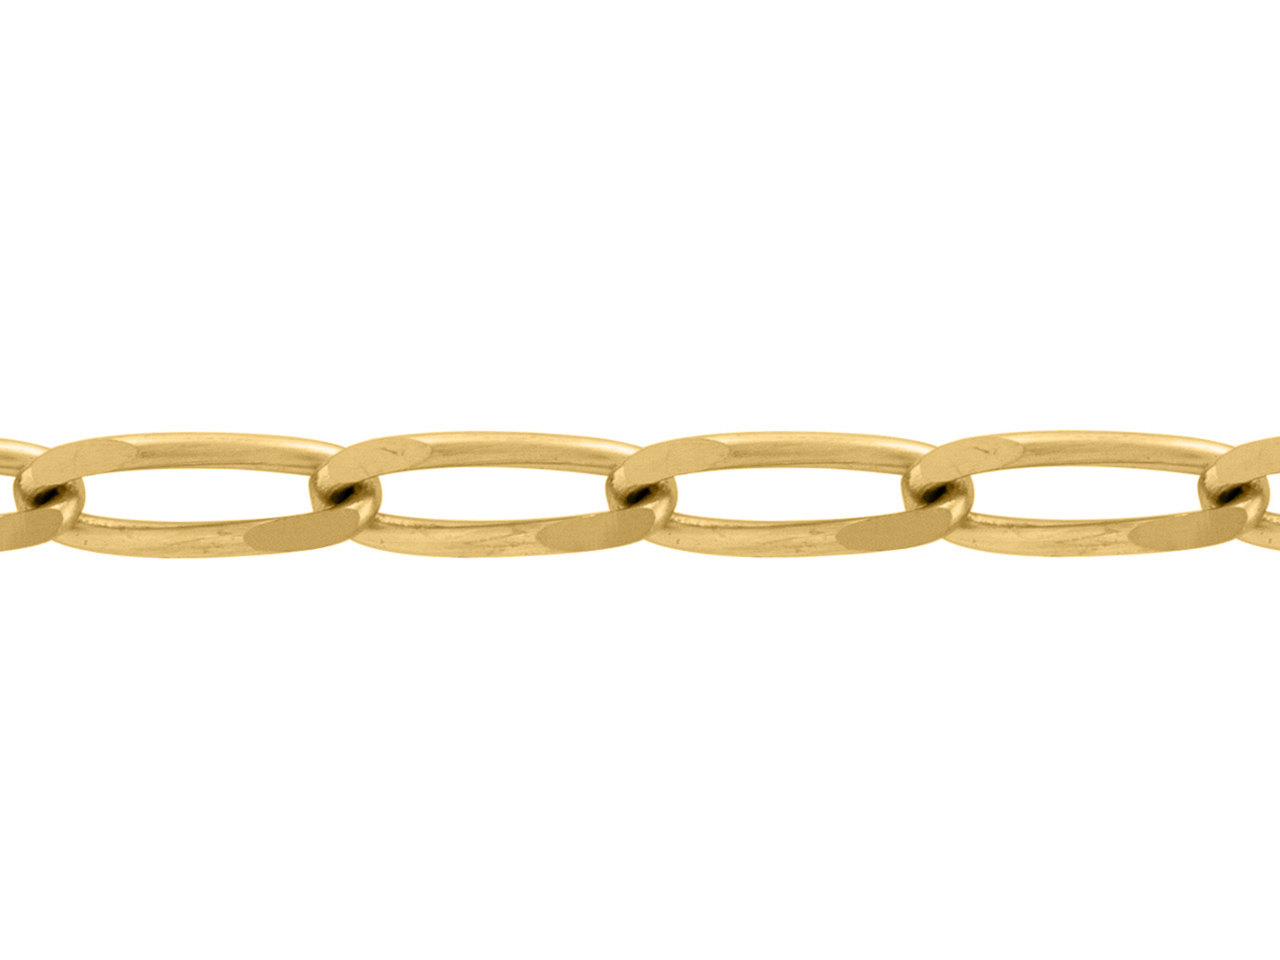 Chaine Maille cheval 2 mm, Or jaune 18k. Réf. 00847